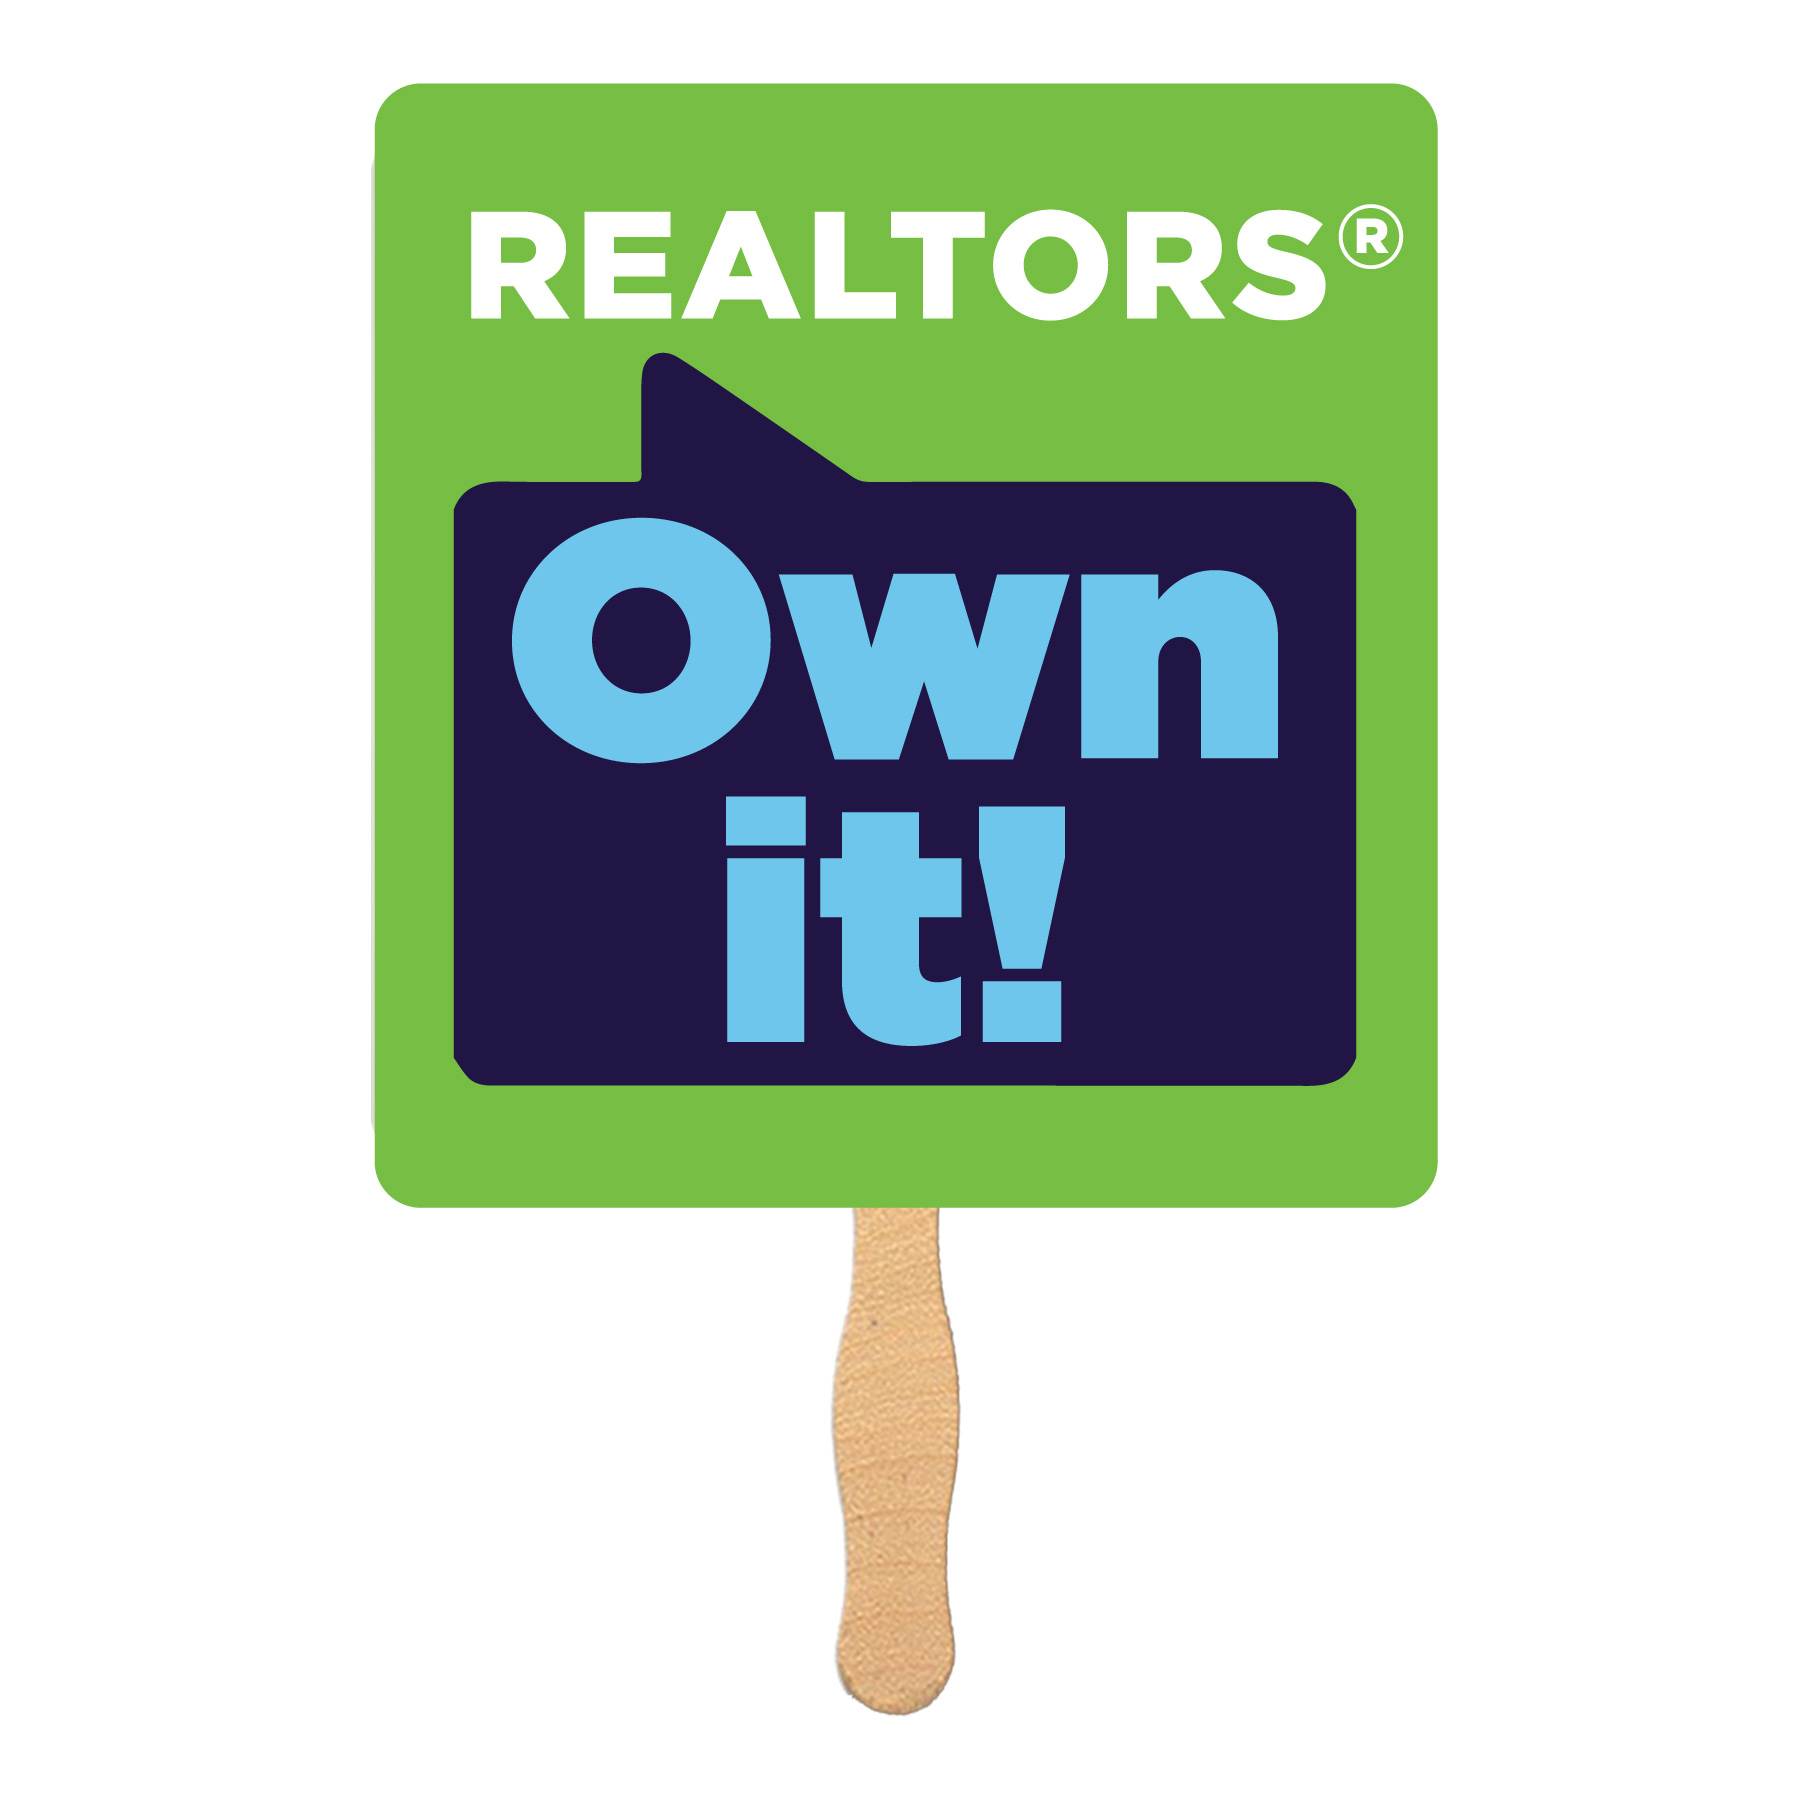 REALTORS® Own It! Hand Fans (Special Order) Hands,Fans,Sticks,Waives